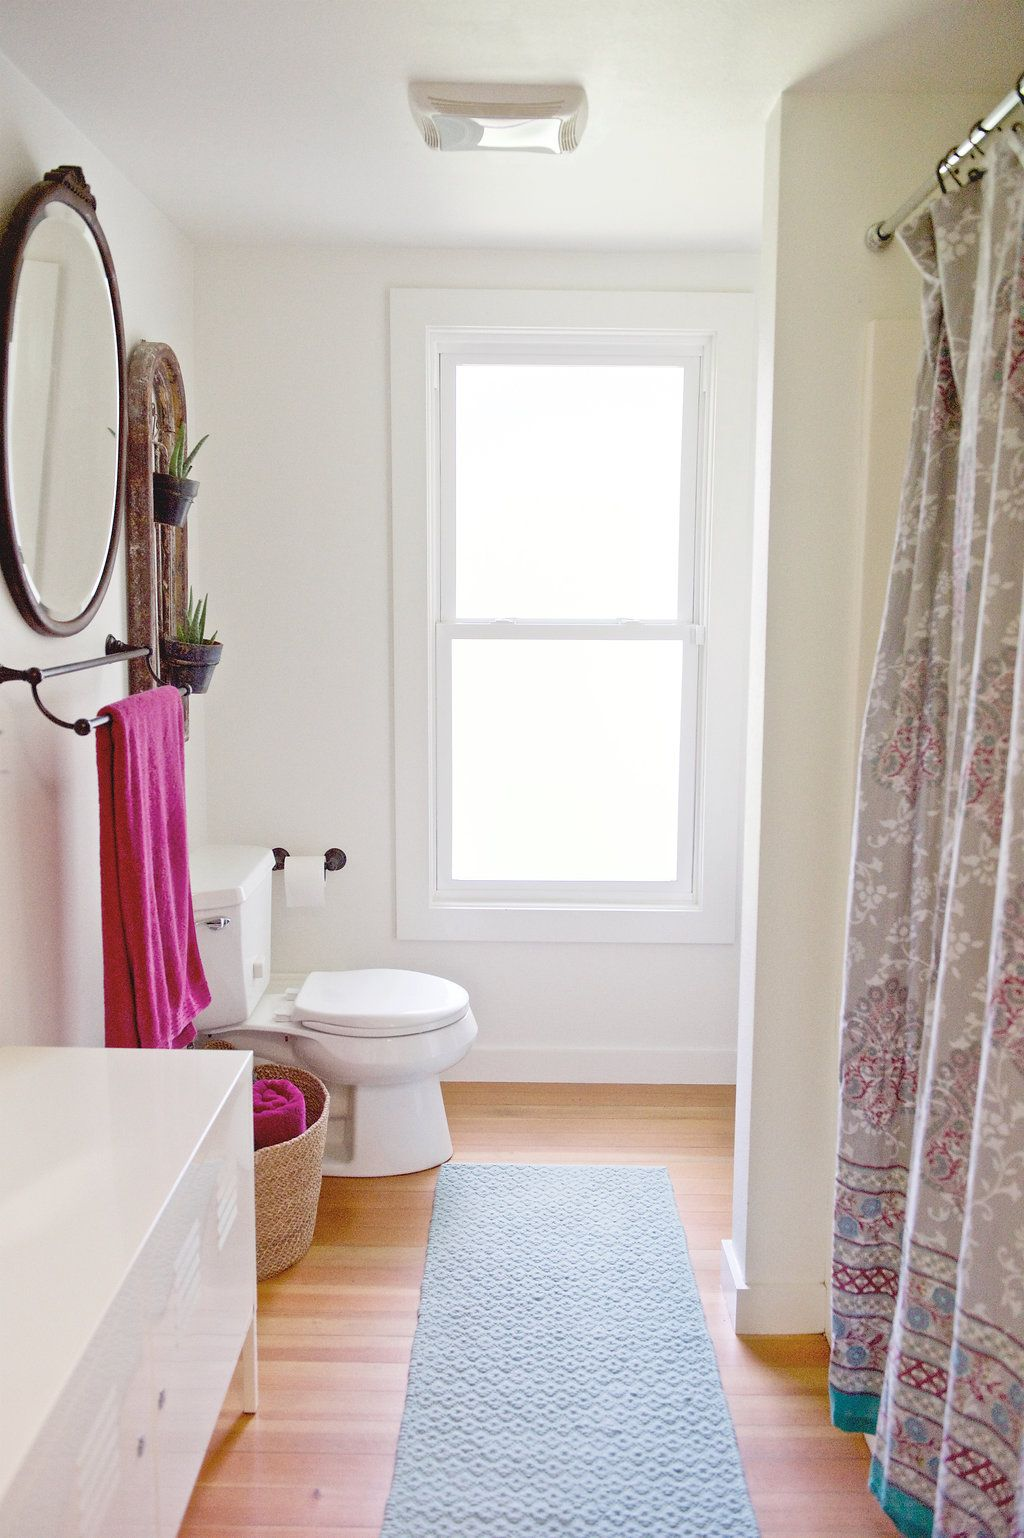 Galley-style bathroom. We call it the hall of mirrors. And plants ...